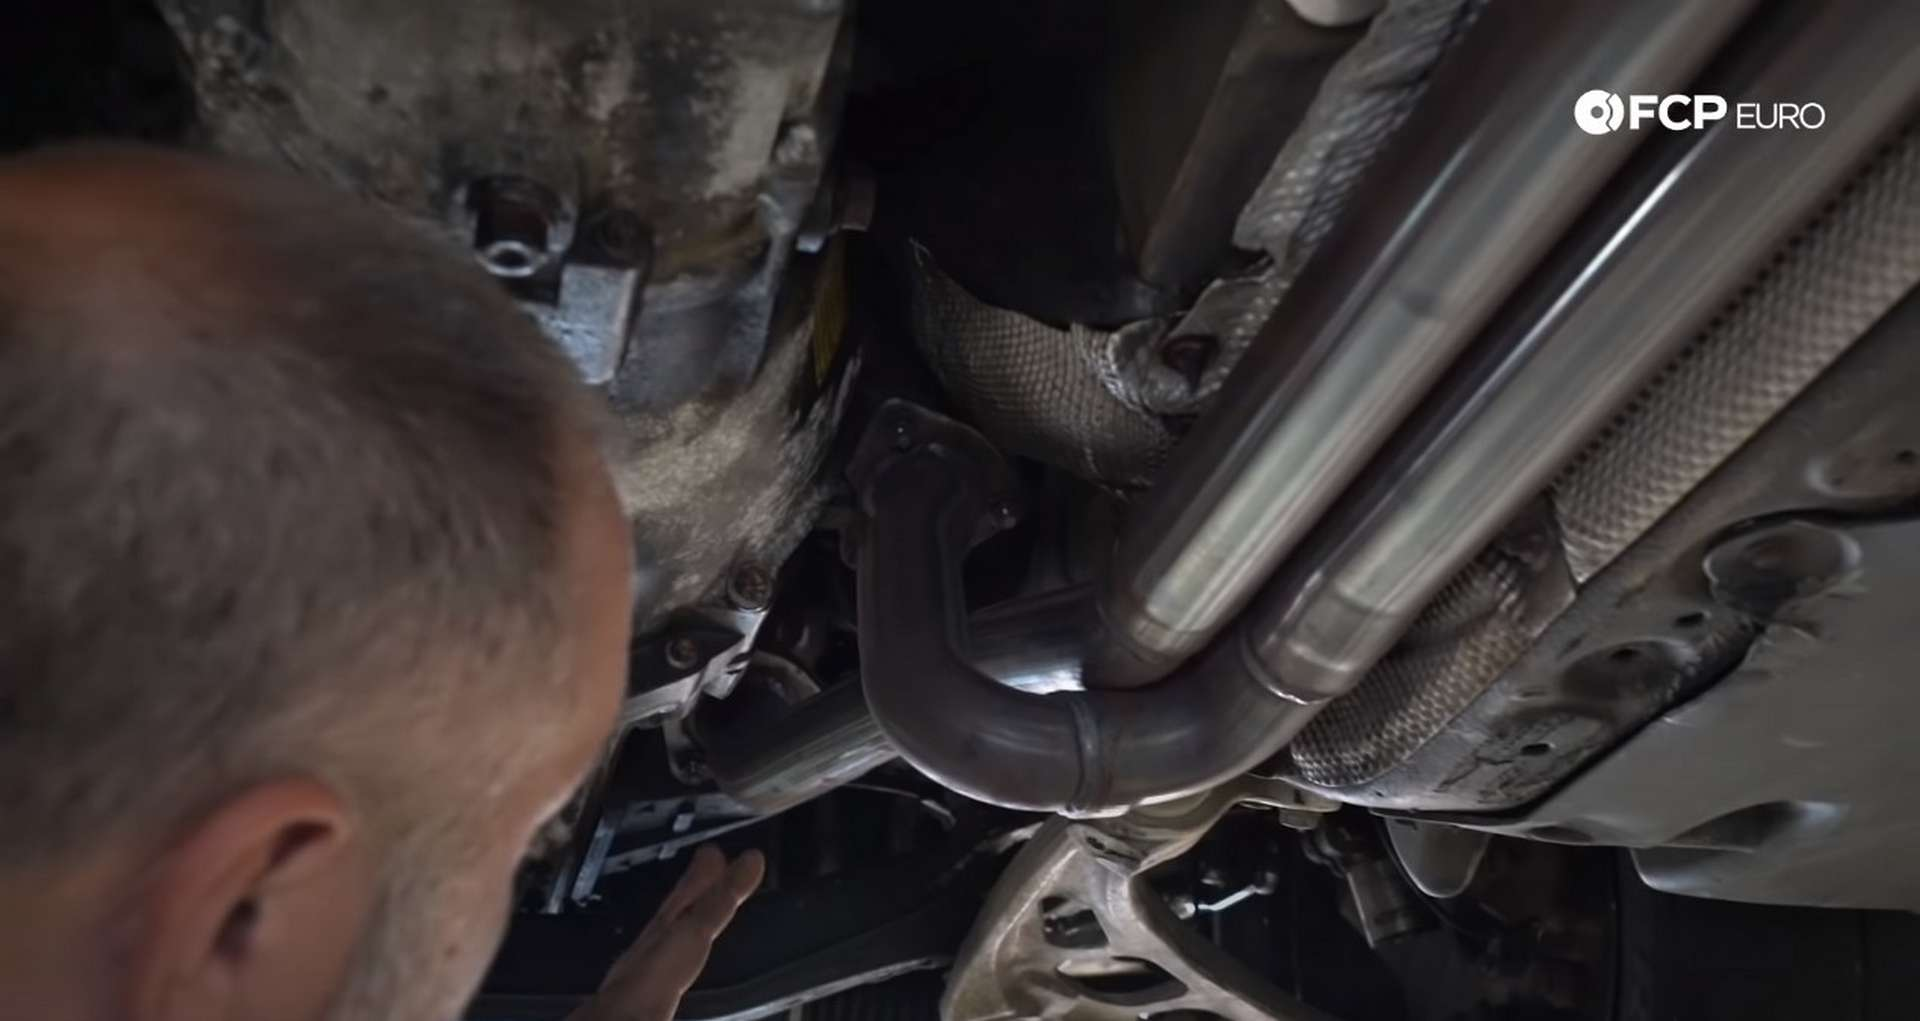 DIY BMW E46 Clutch Replacement removing the exhaust manifold nuts